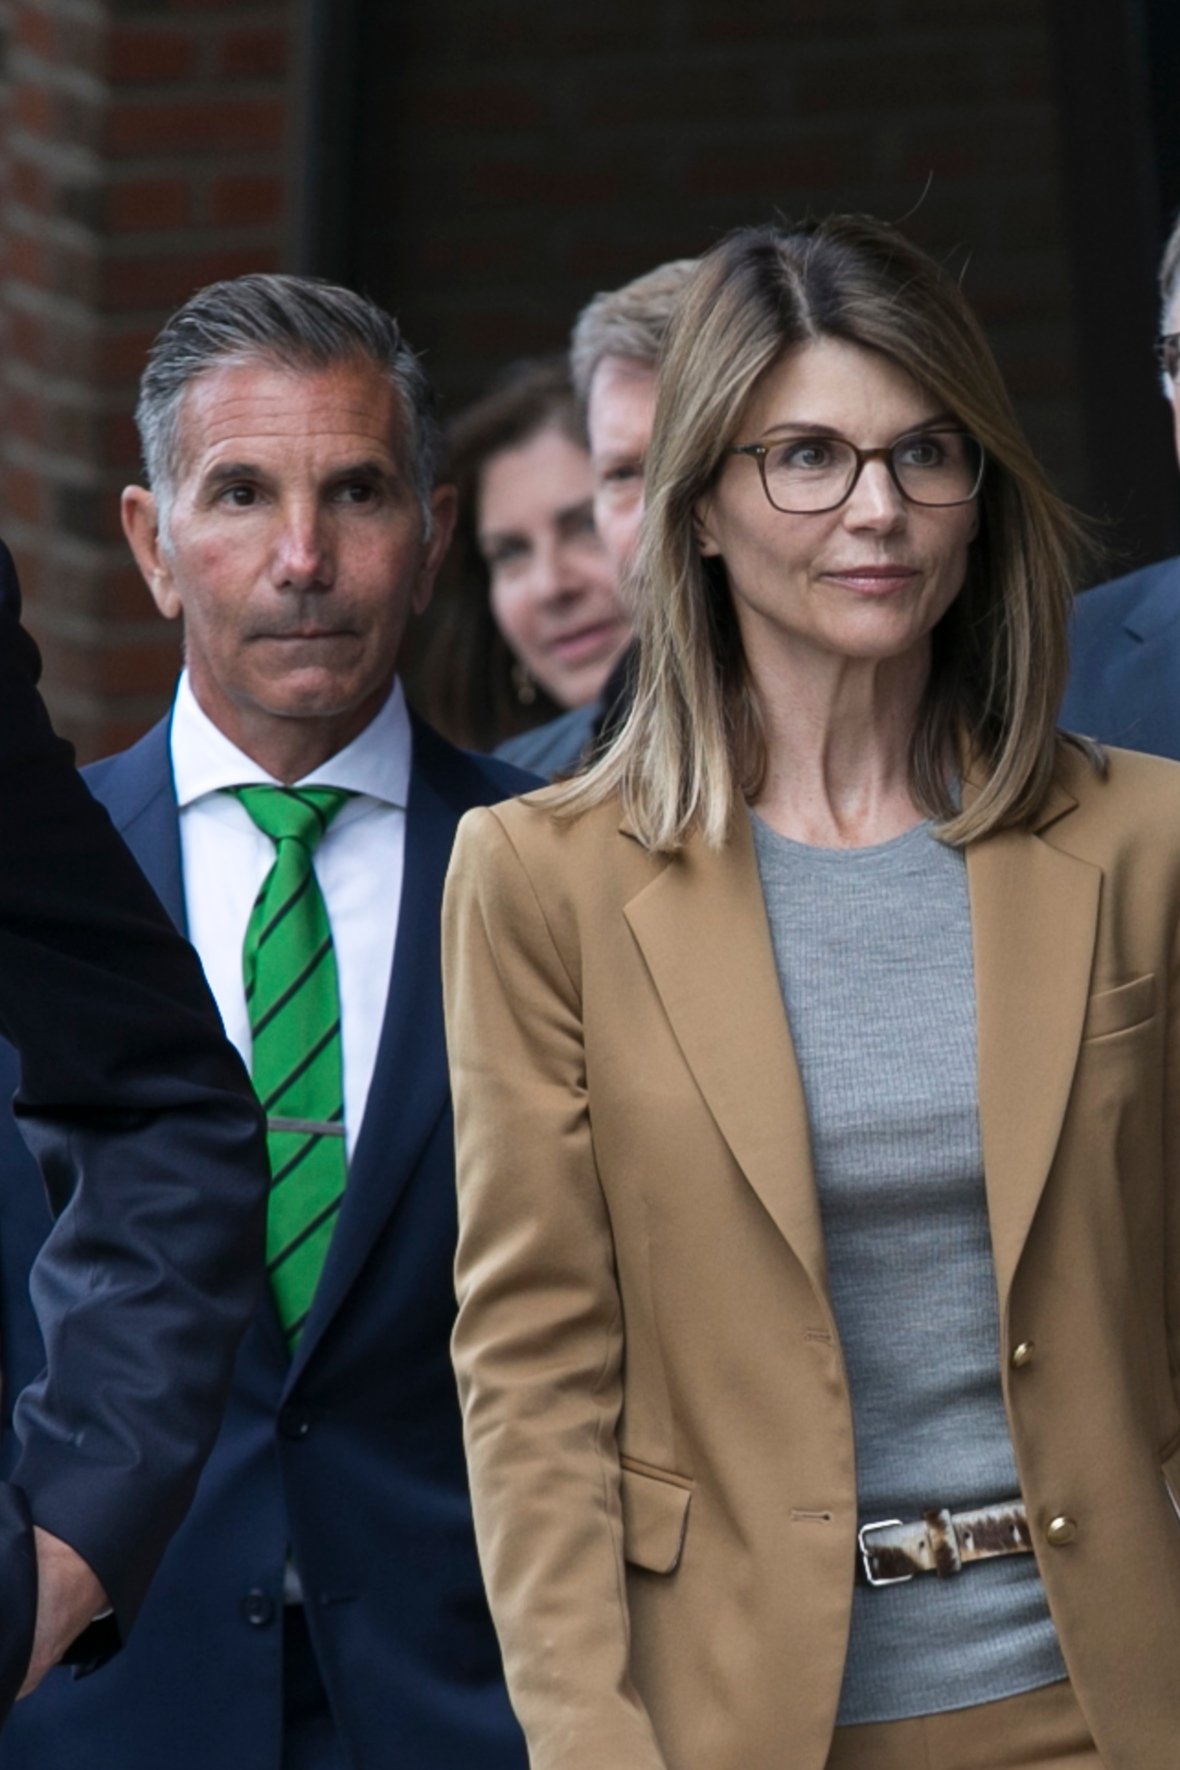 Mossimo Giannulli and Lori Loughlin